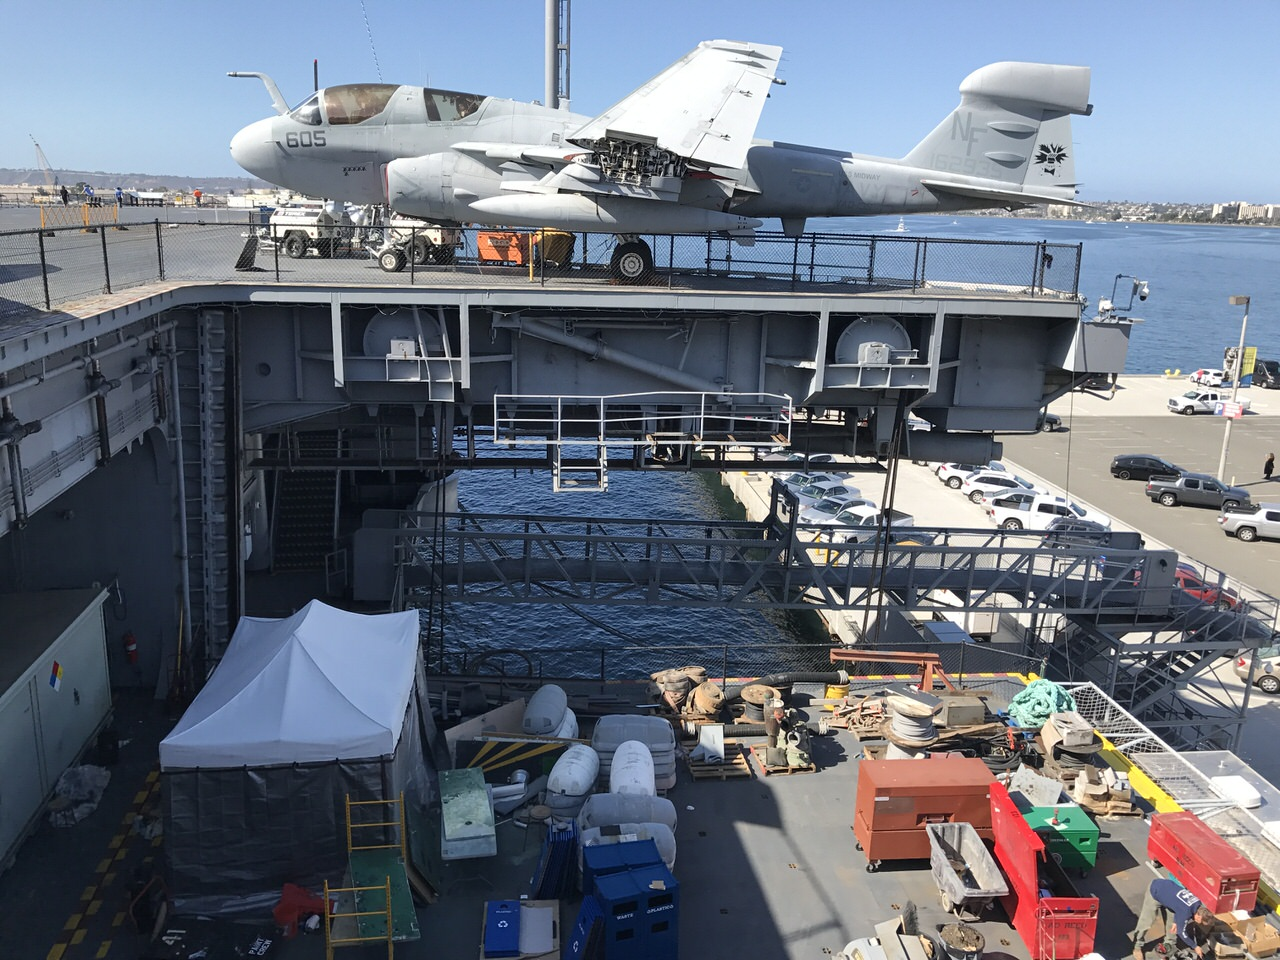 Uss midway museum 0614